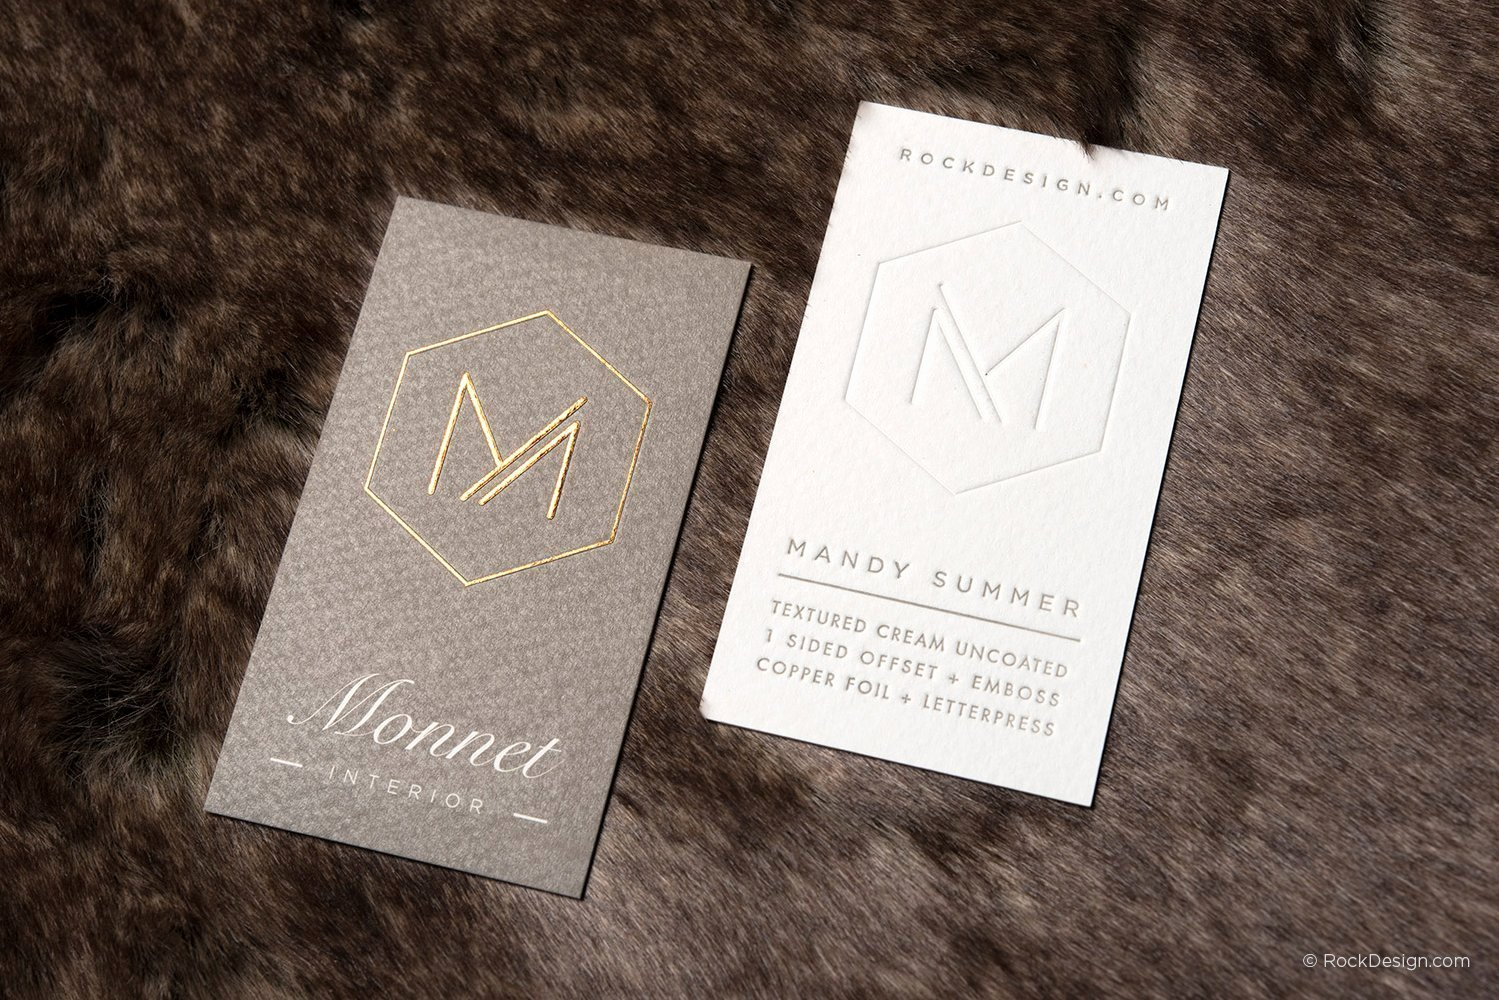 Interior Designer Business Cards Unique Interior Designer Template On Textured Stock with Emboss and Copper Foil– Monnet Interior